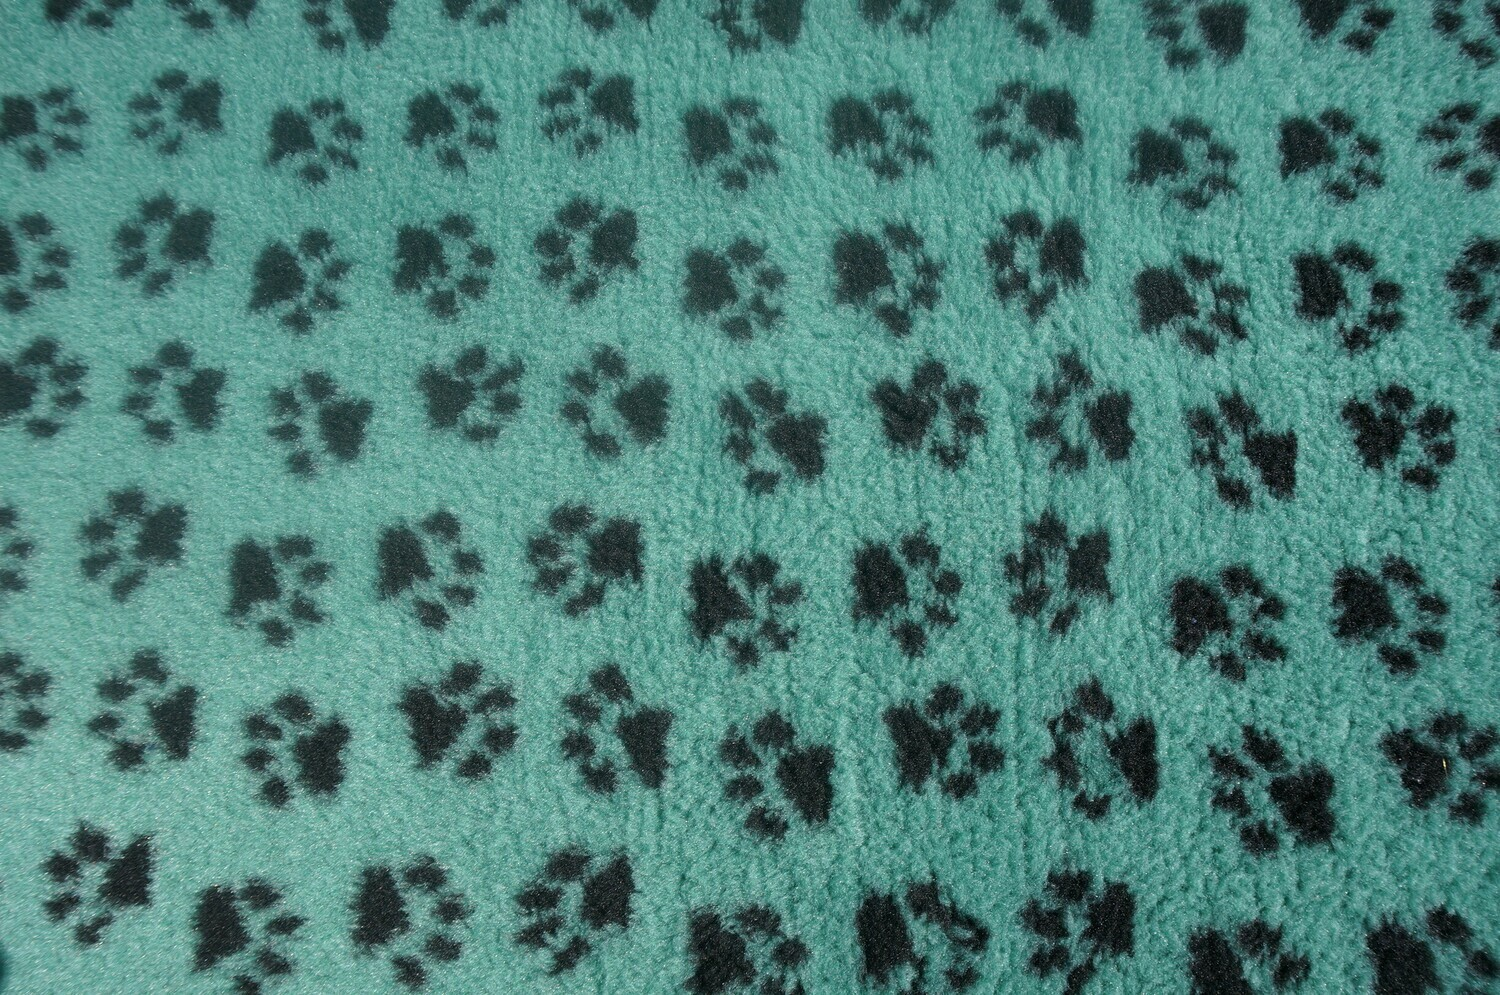 {15 x Metre Roll} : Ultra Premium - Non Slip Backing :  Sage Green with Black Paws  - Ref : (6352)